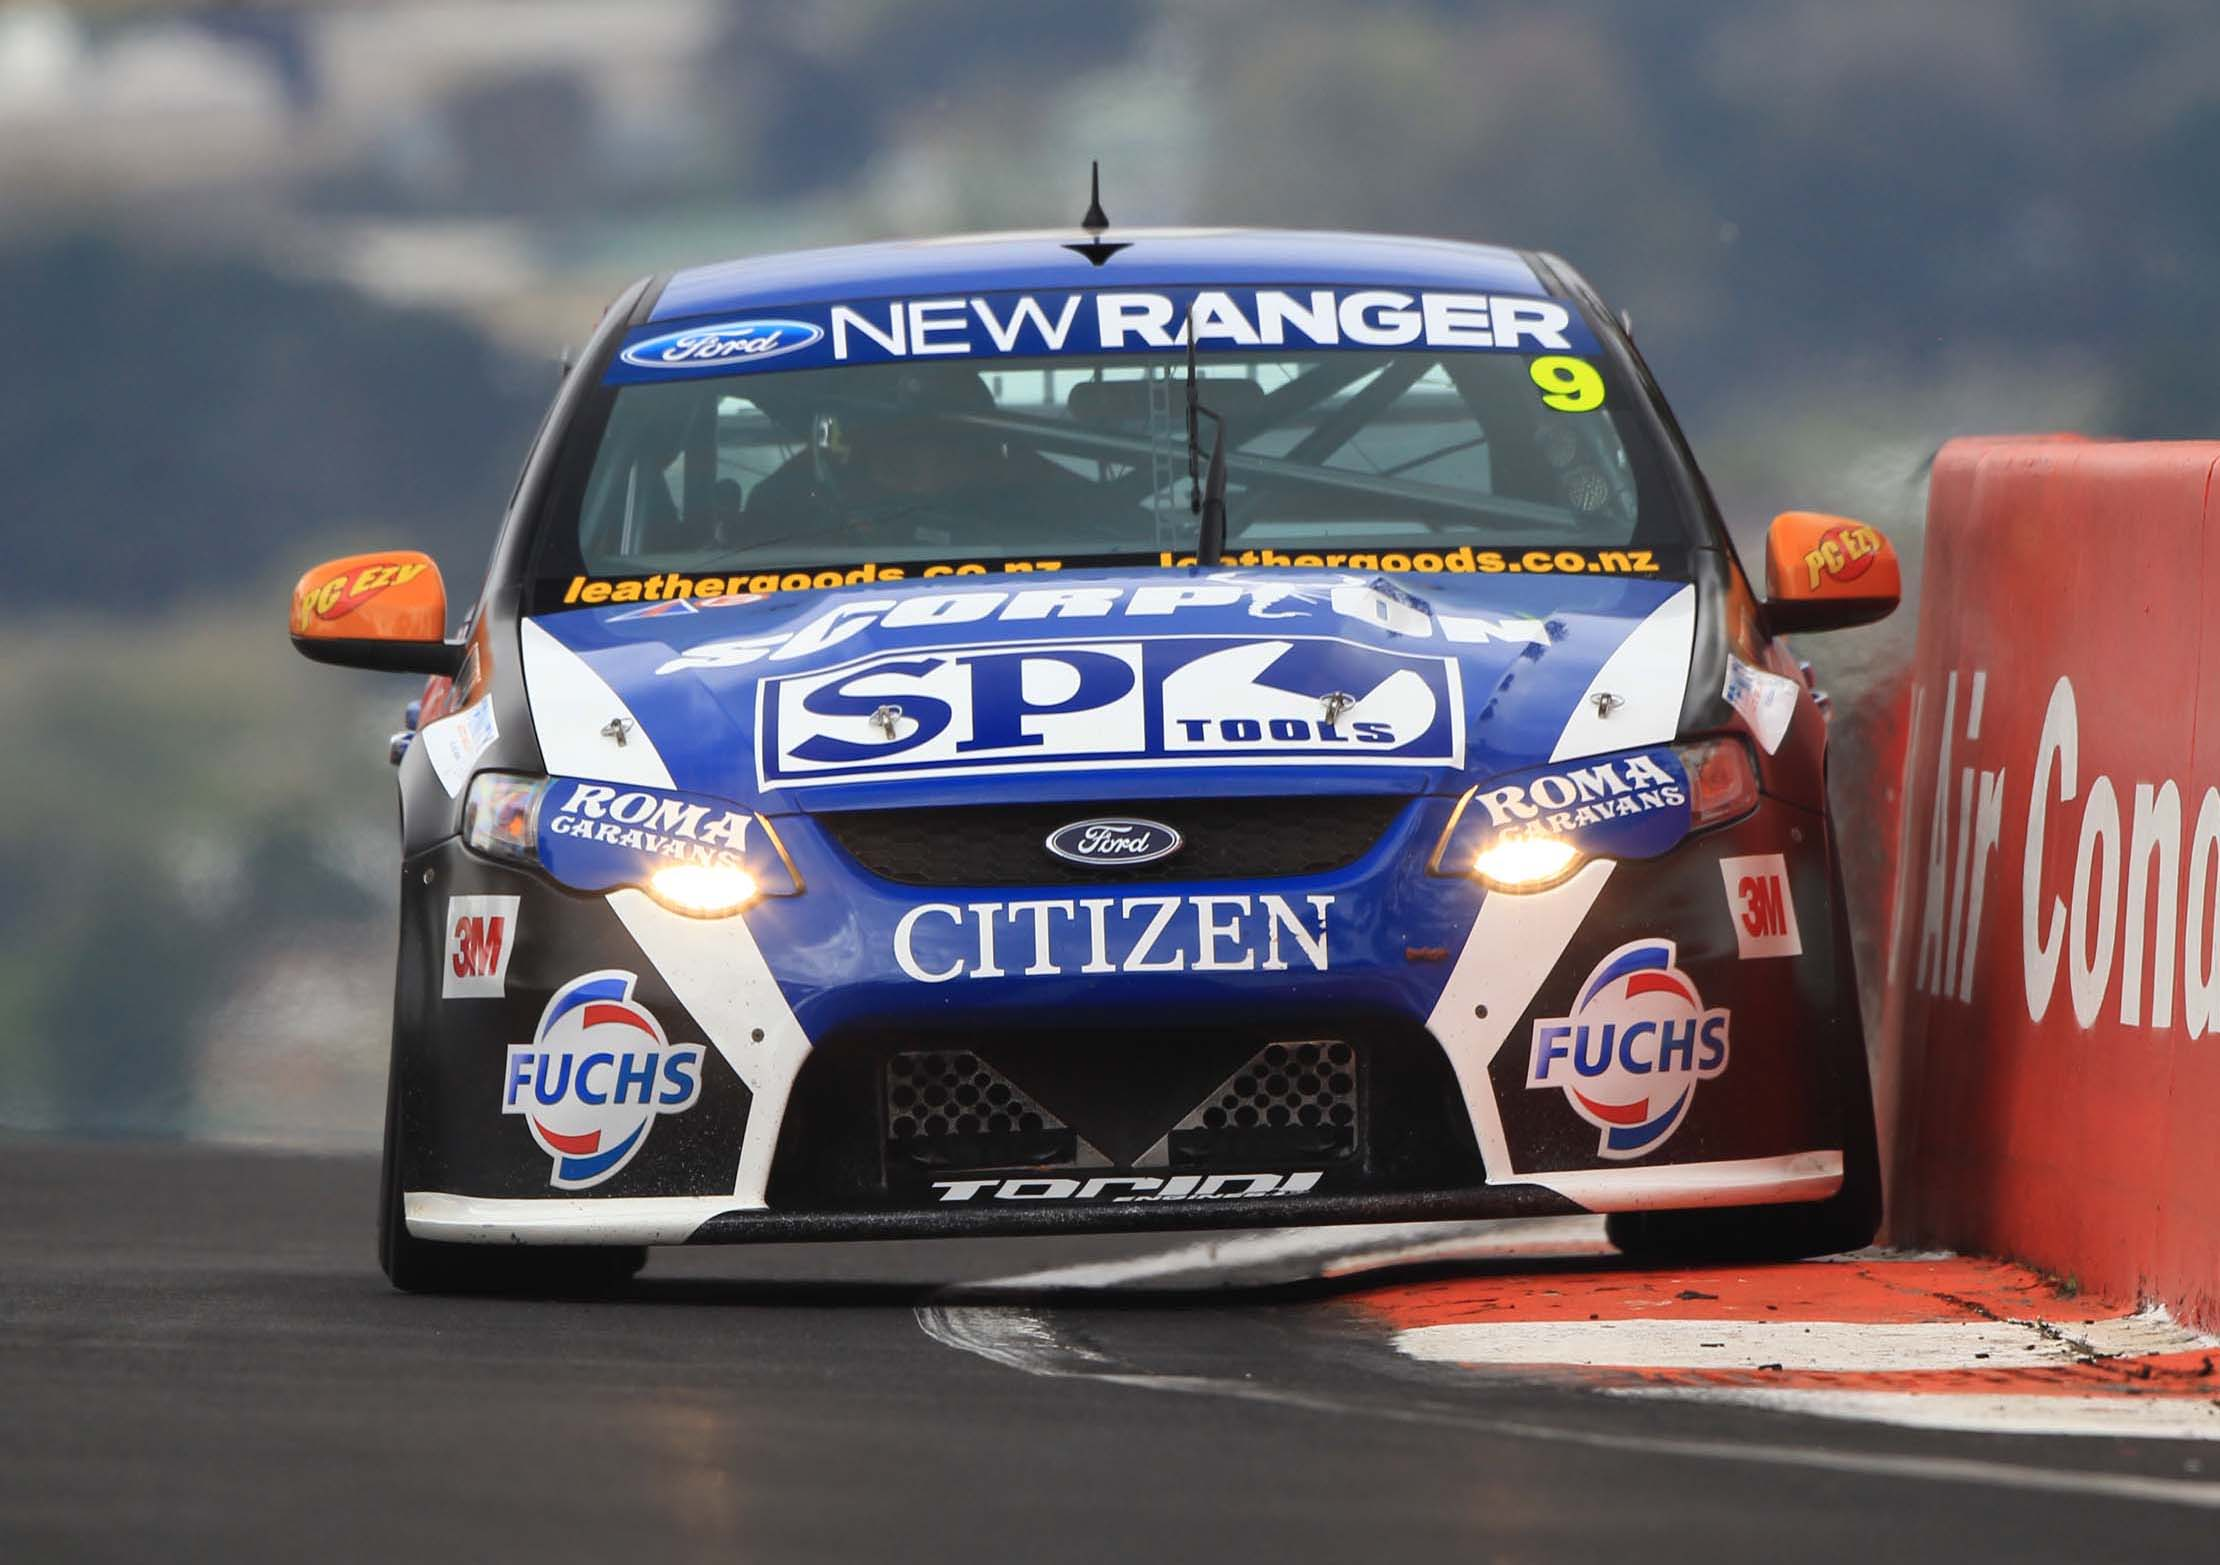 ford v8 supercar with Aussie V8 Supercars Race Racing V 8 Ford R on Holden Dumps Walkinshaw For Triple Eight As Factory Holden Racing Team as well 1994 Ford Saleen Mustang S 351 as well 2018 Holden  modore Revealed 47908 furthermore Mclaren 2018 Senna Gtr Concept as well Maseratis New Gransport V8 Supercar.